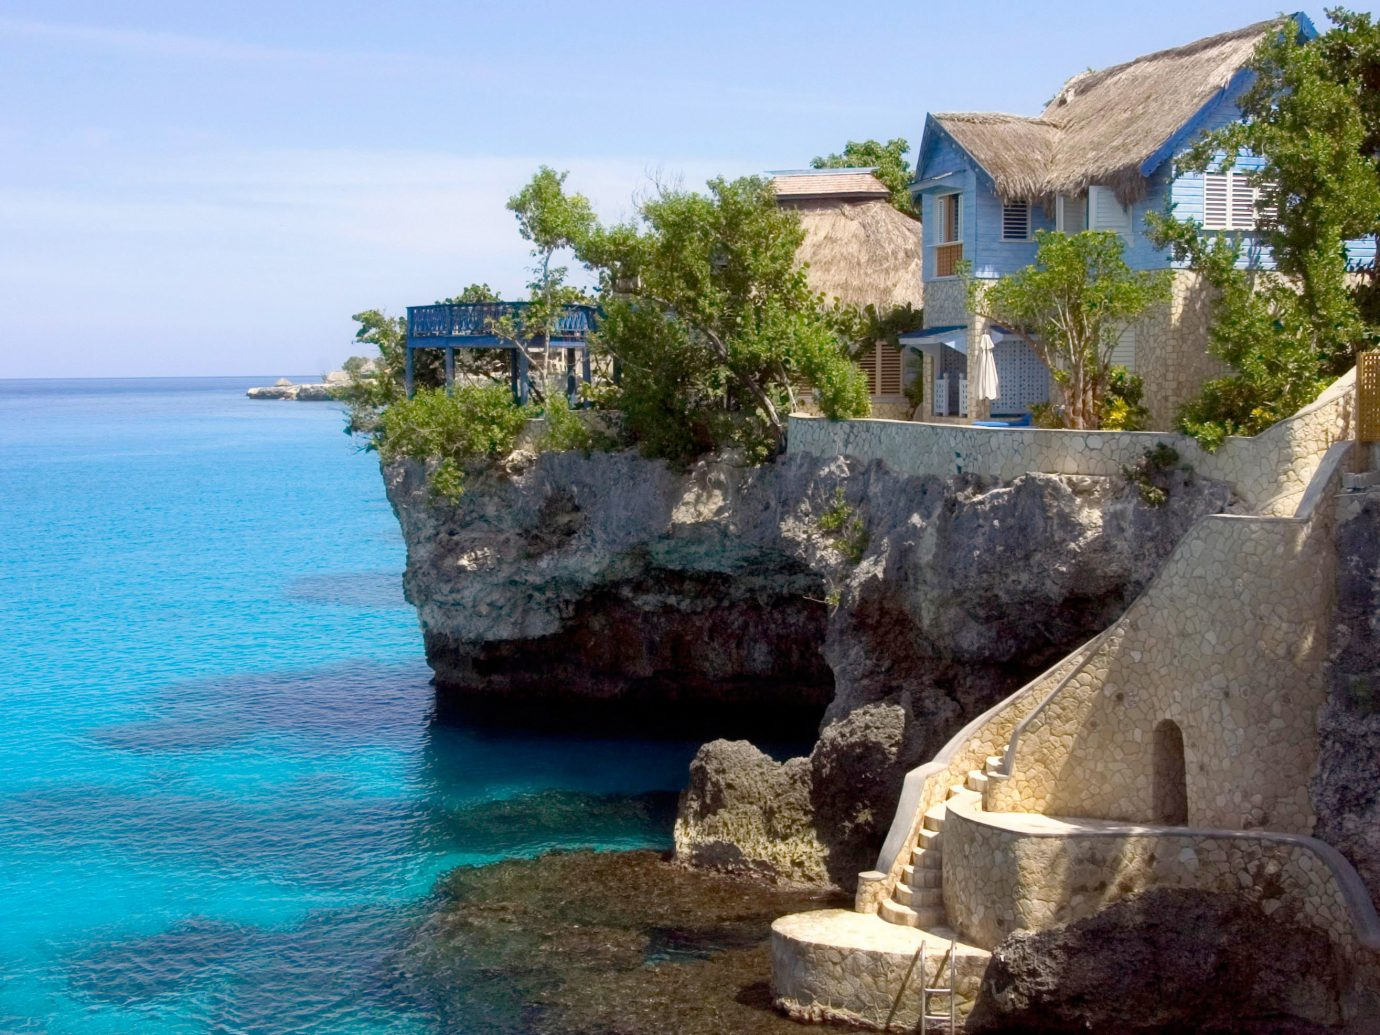 Hotels water outdoor sky house rock landform geographical feature Coast Sea vacation bay Nature tourism terrain Island cove cliff stone cape Beach Resort